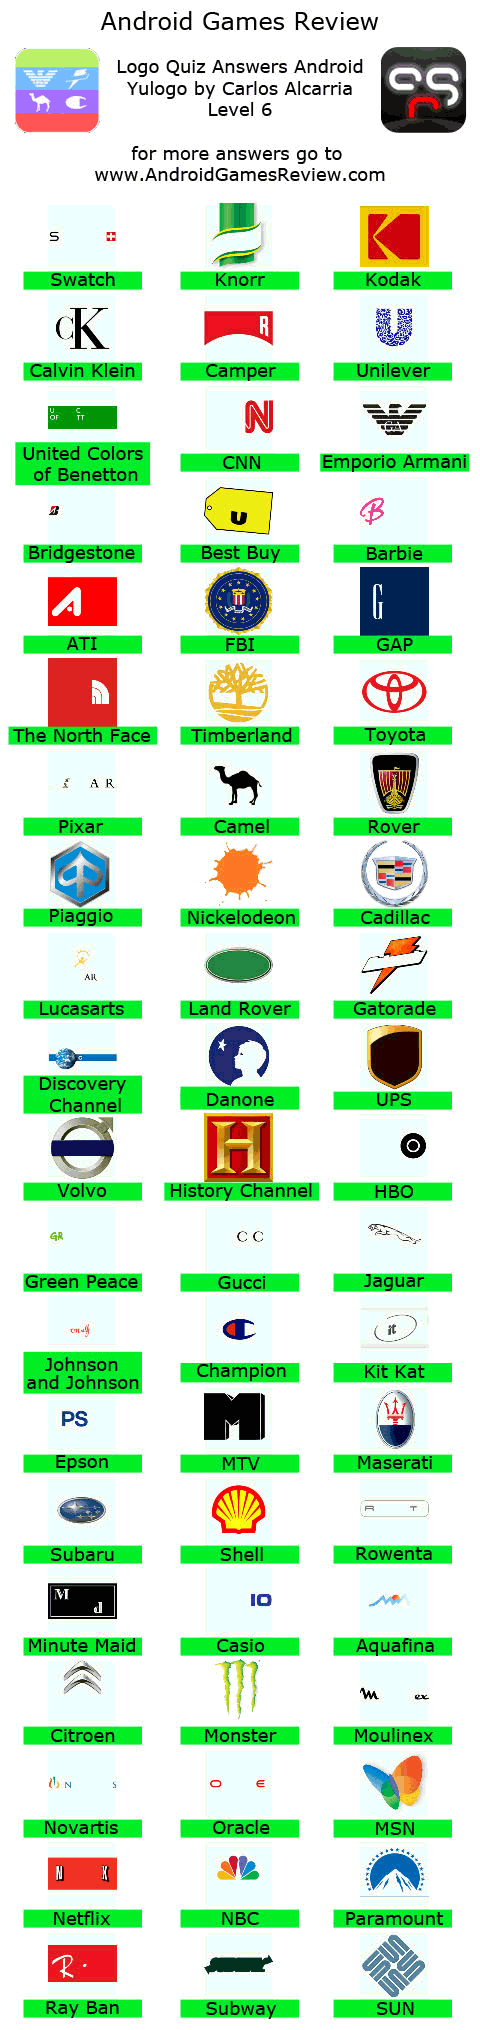 Logo quiz review android games review logo quiz answers android level 6 altavistaventures Gallery